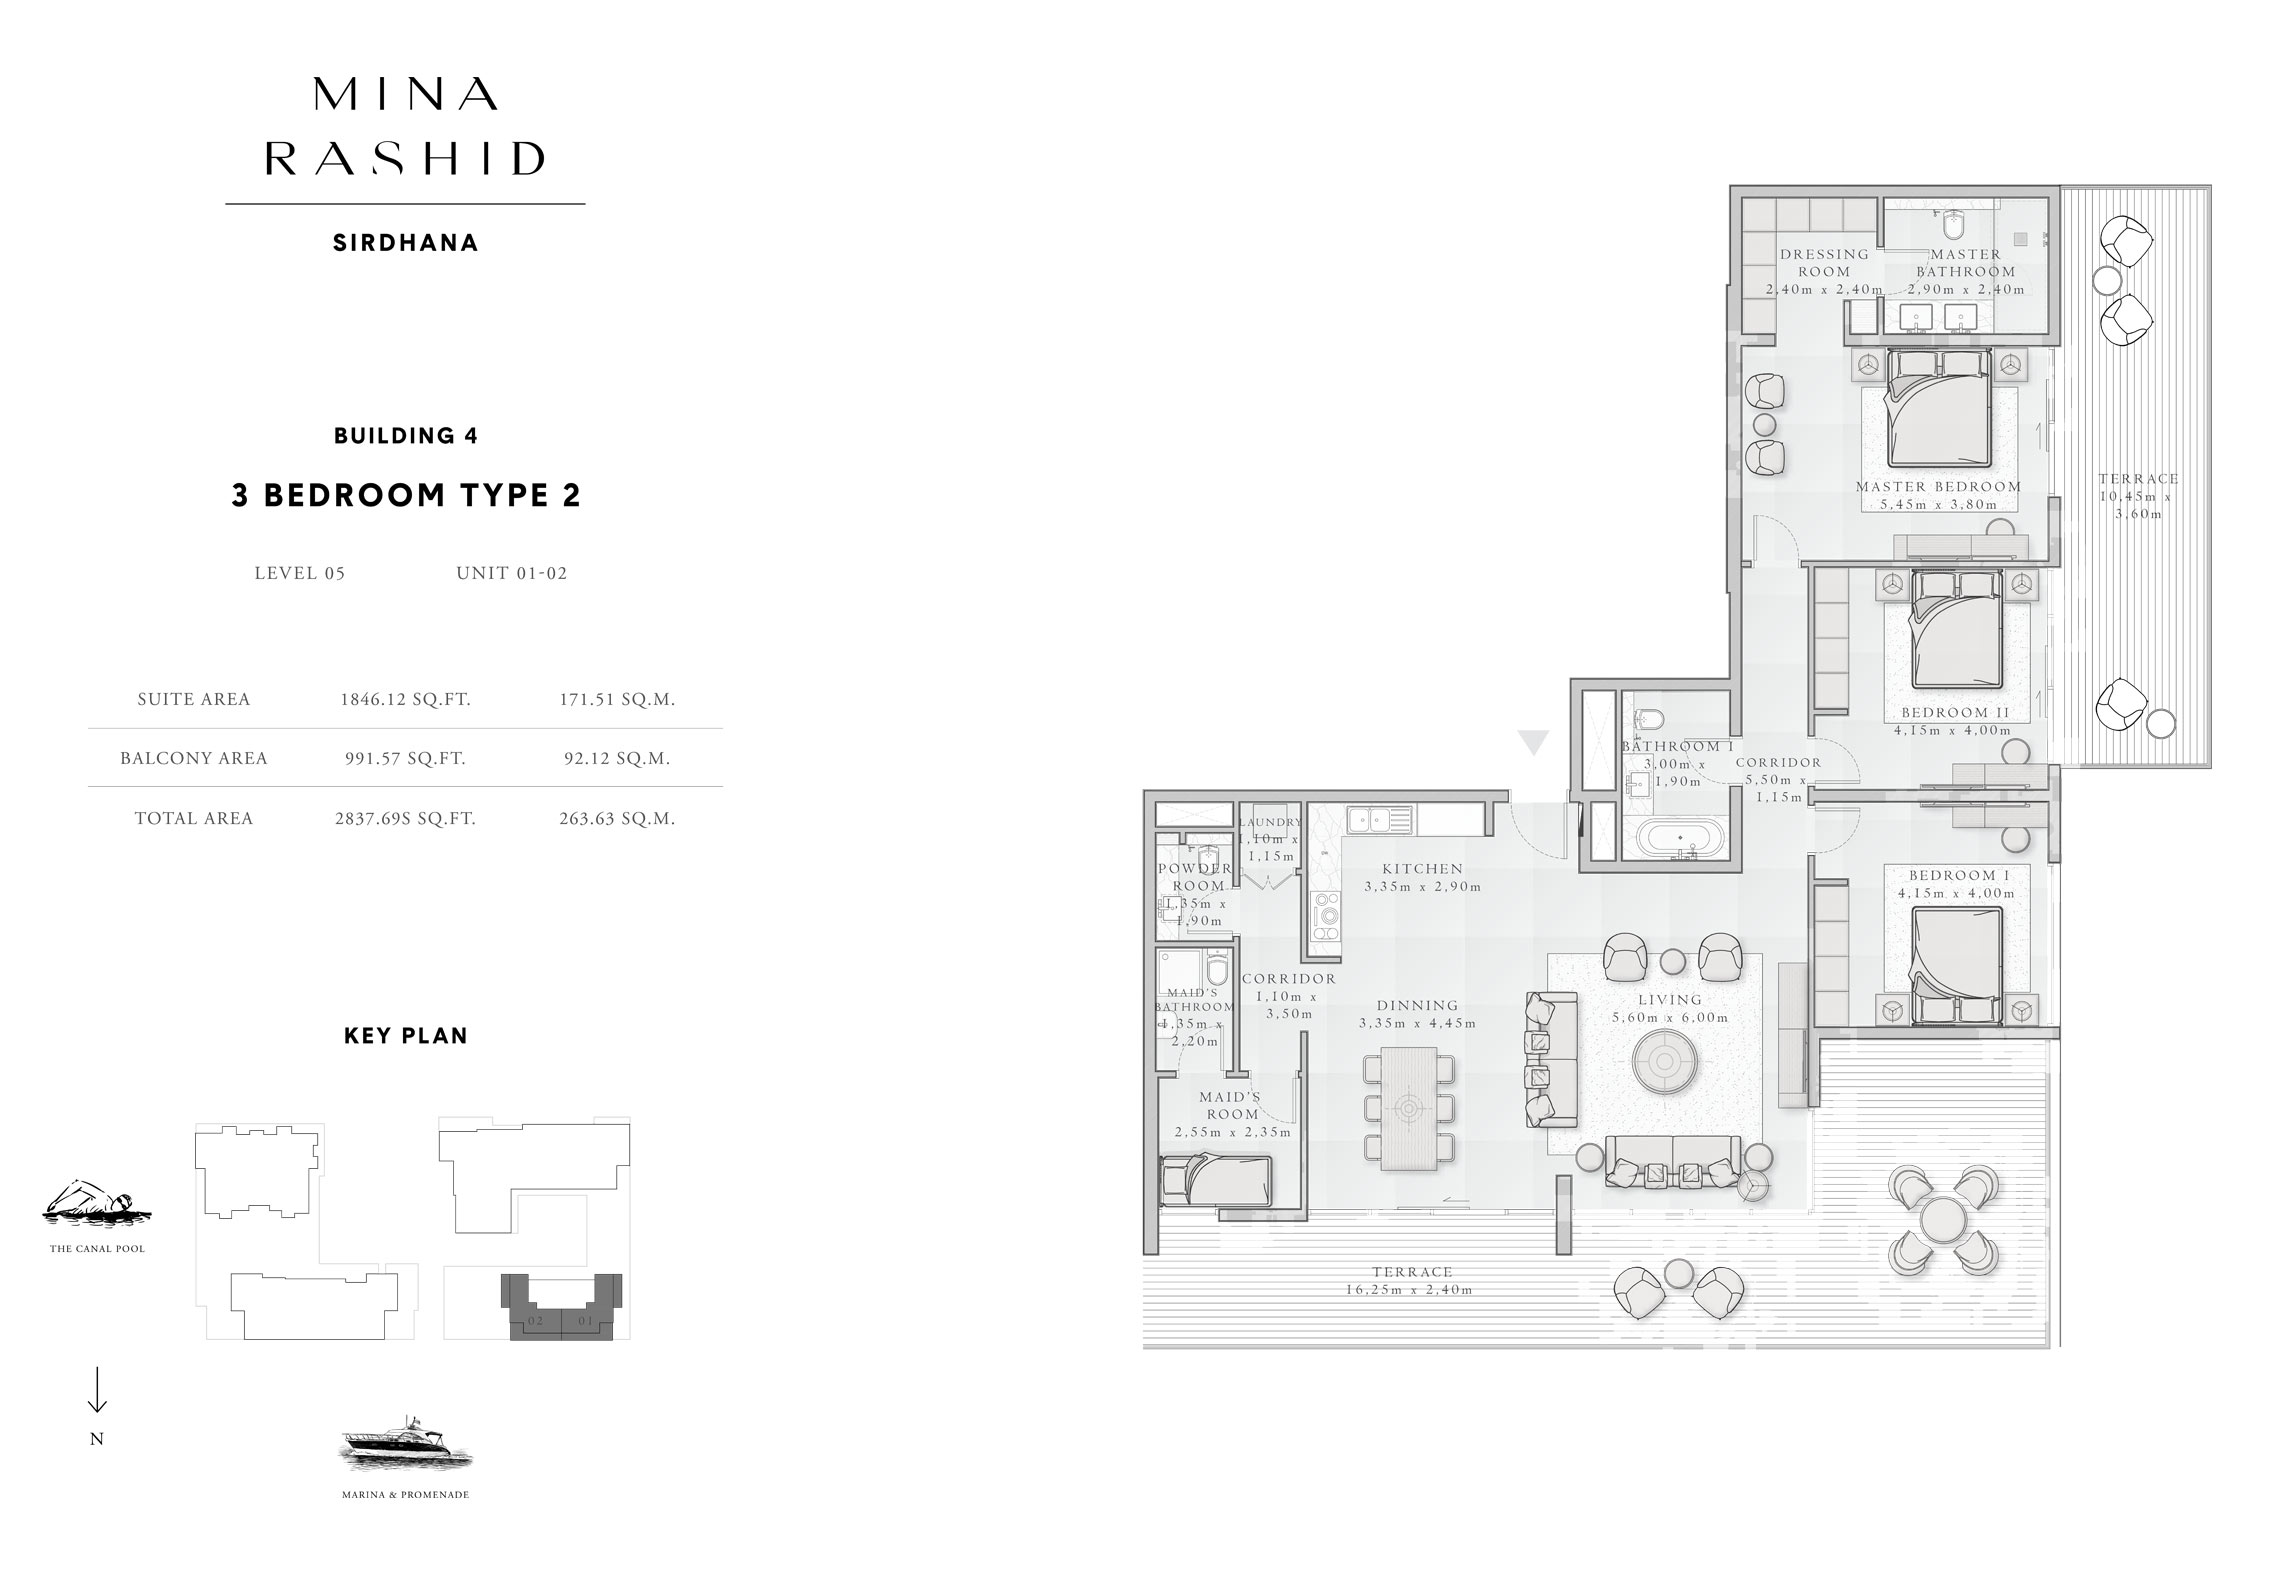 3-Bedroom-Type-2, Building-4, Level-5, Size-2837-Sq-Ft